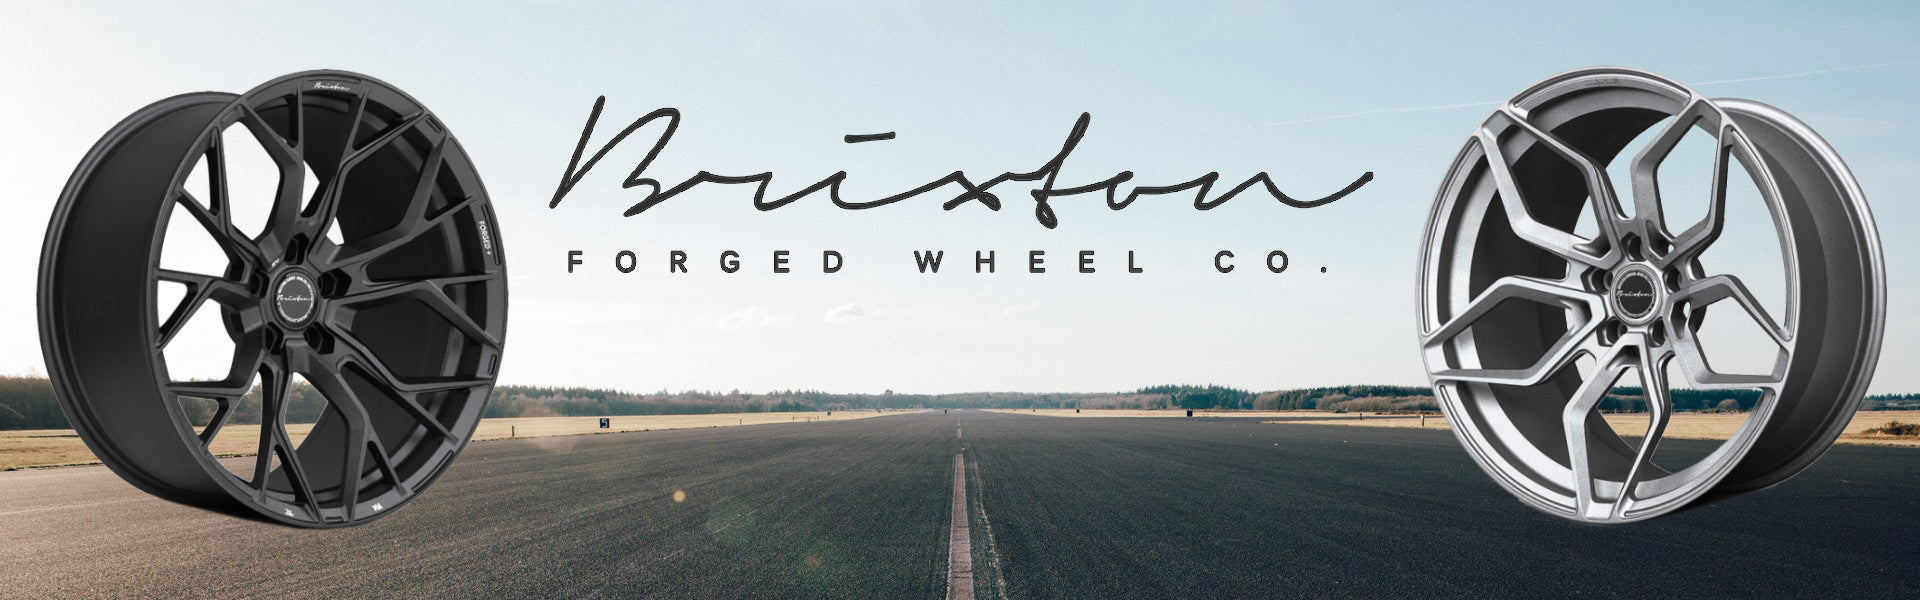 Brixton Forged™ Wheels and Rims for Performance Exotics in Chicago